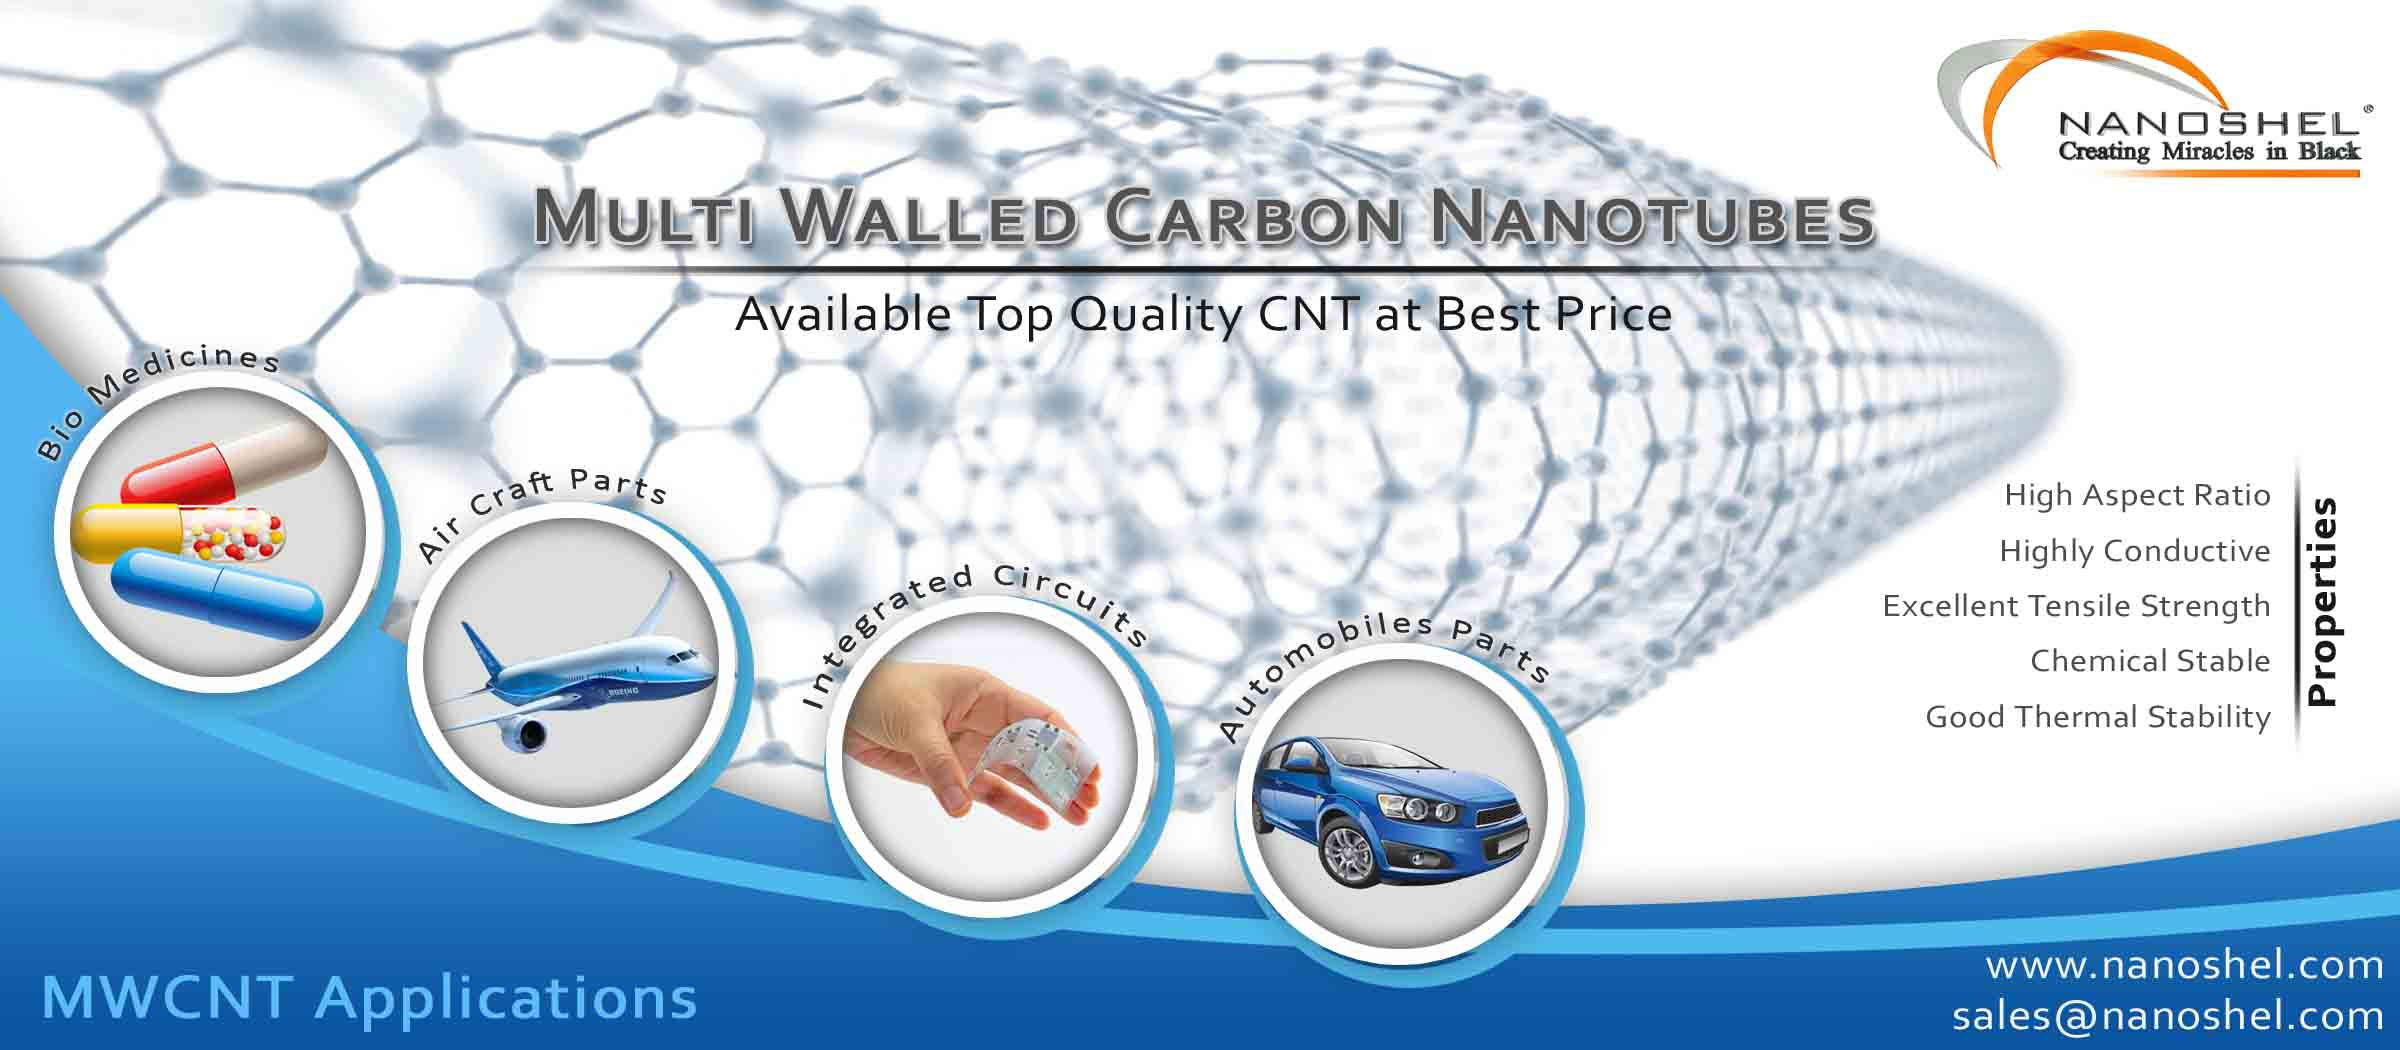 carbon nanotubes What are carbon nanotubes (cnt) and how are they made synthesis, physical properties, and applications are reviewed.